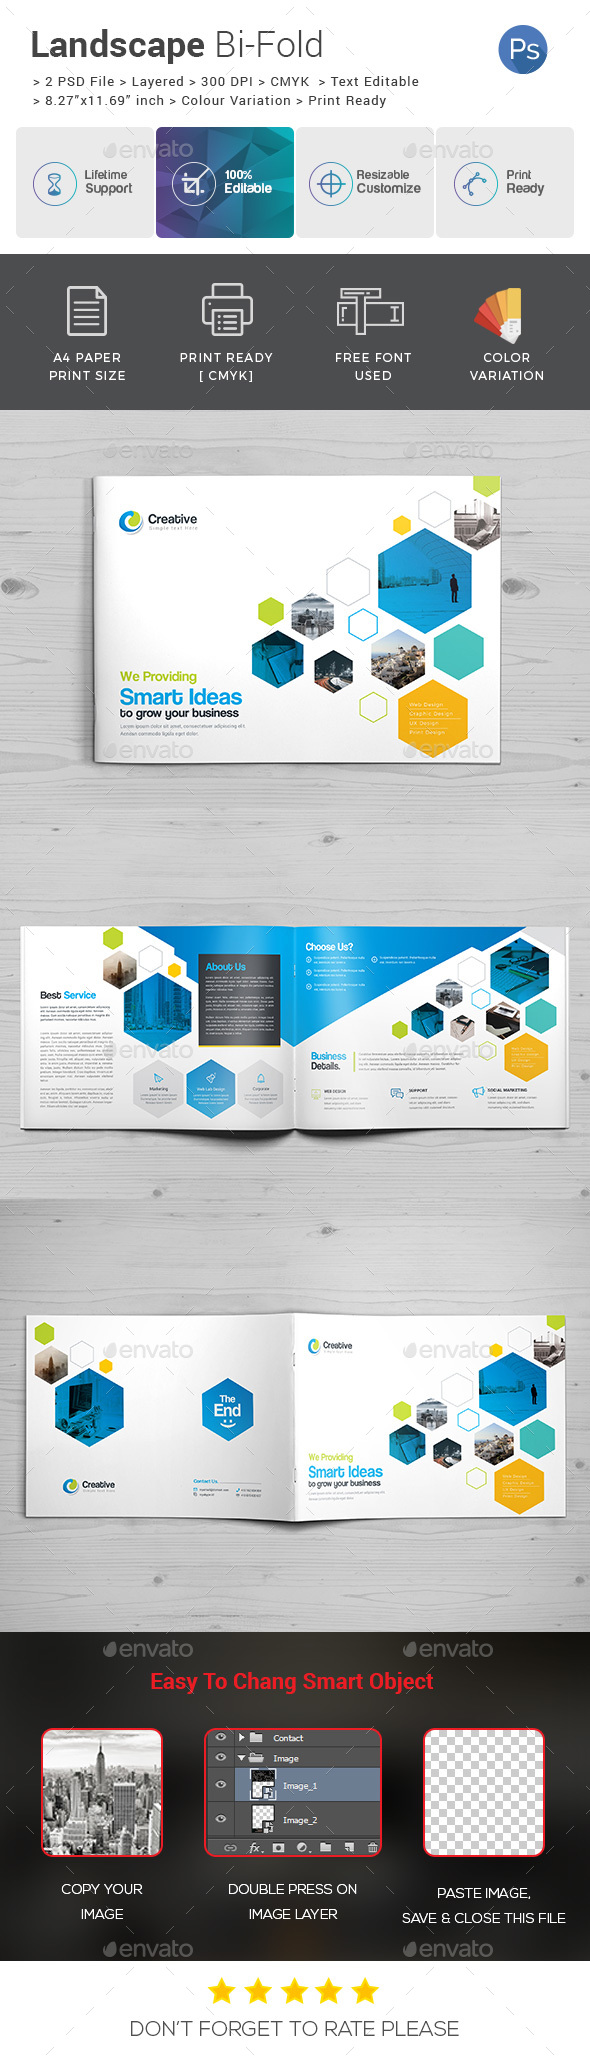 Landscape Bi-Fold Template - Corporate Brochures